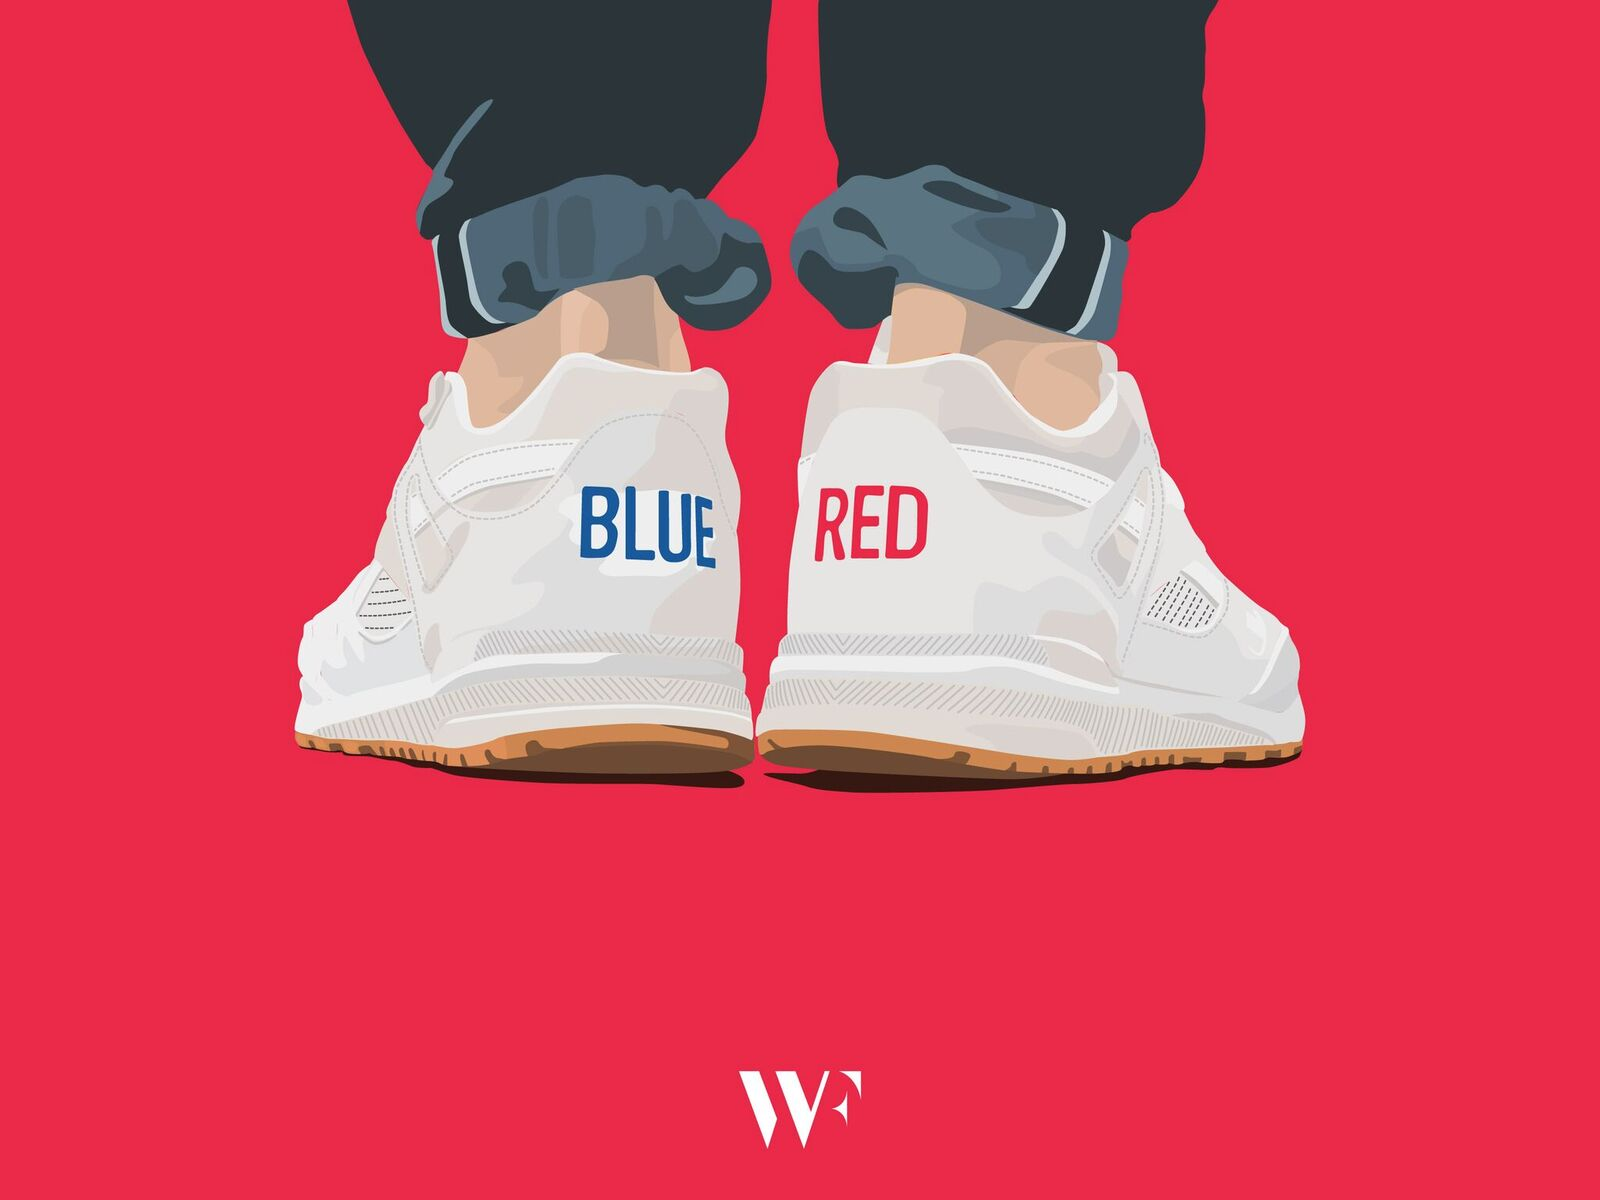 Lovely Sneakers Illustrations by Stanley Wong